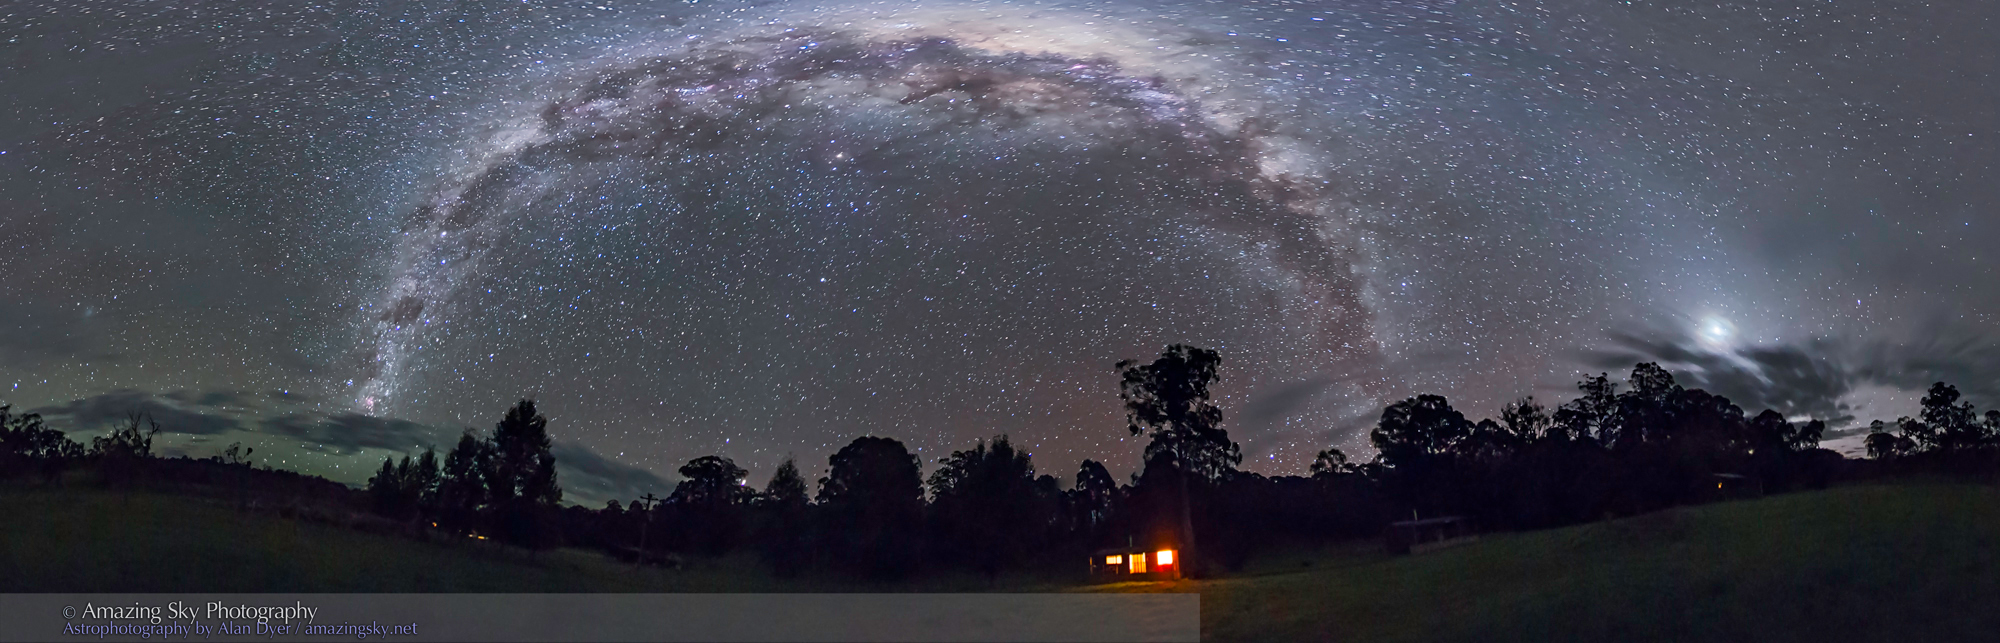 The Galactic Archway Of The Southern Sky The Amazing Sky